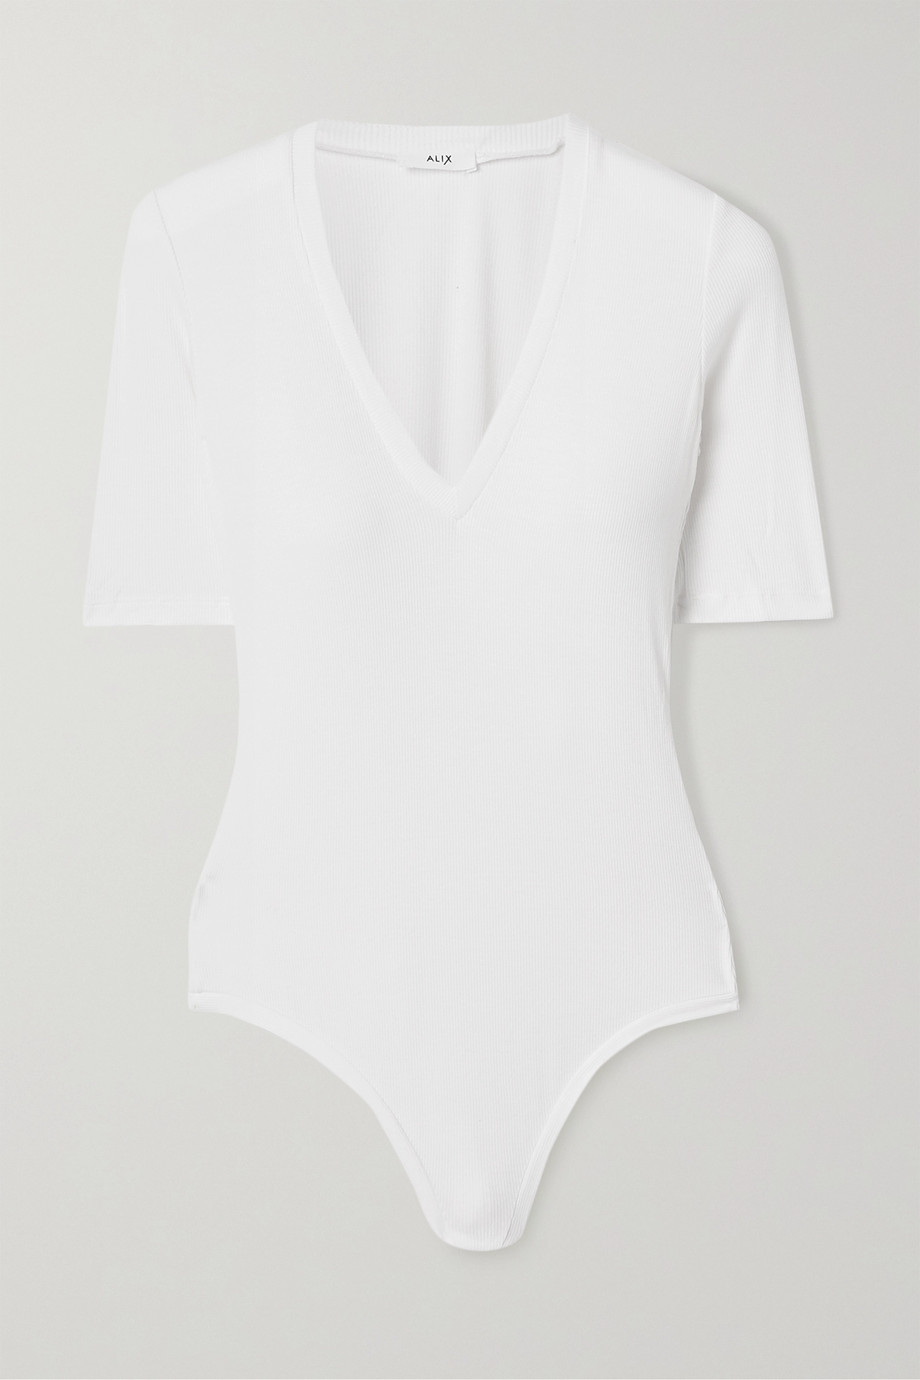 Alix NYC Bedford ribbed stretch-modal thong bodysuit